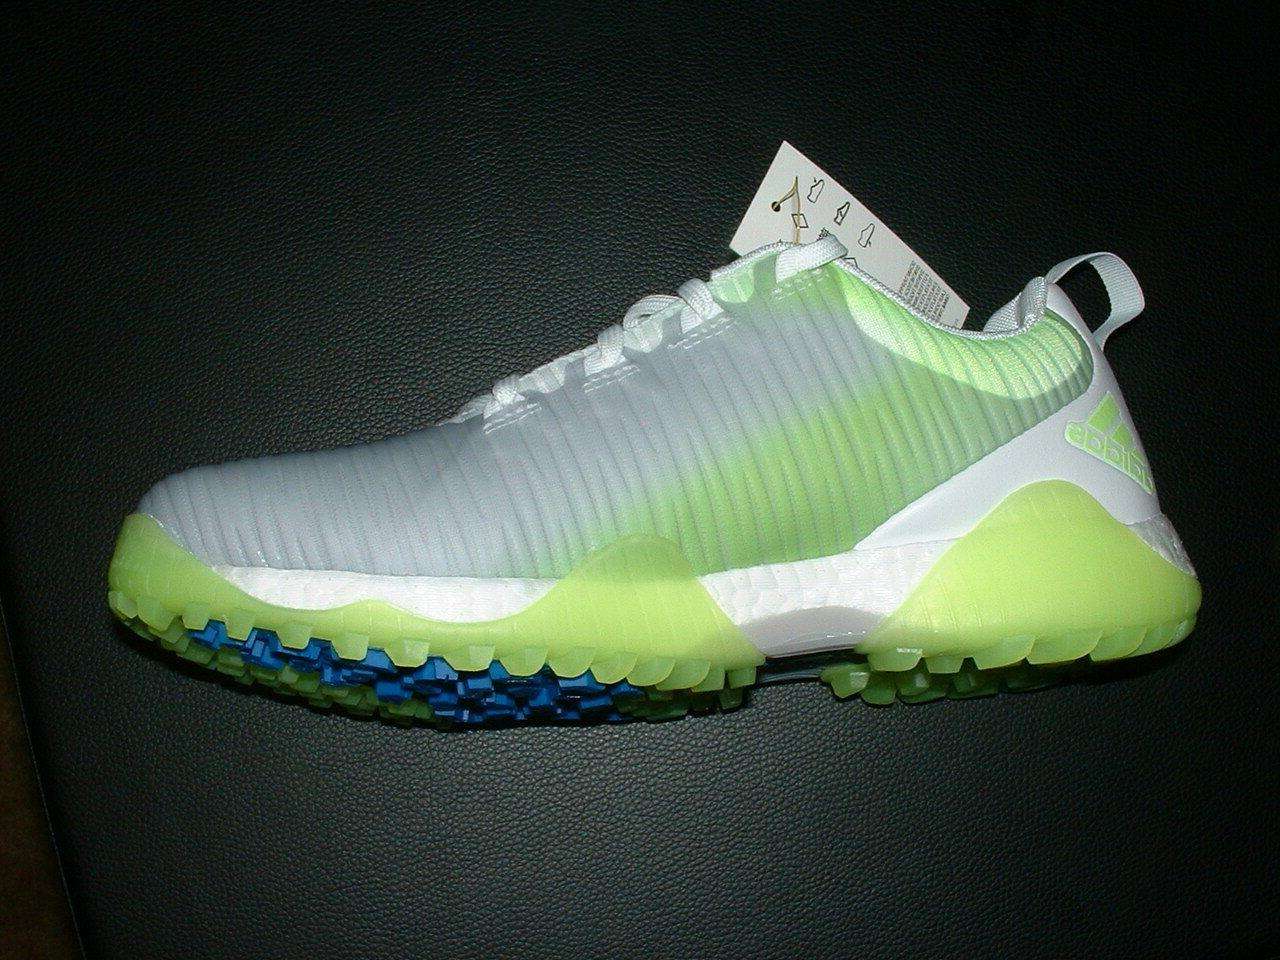 '20 adidas Shoes, Choose Your #EE9102,